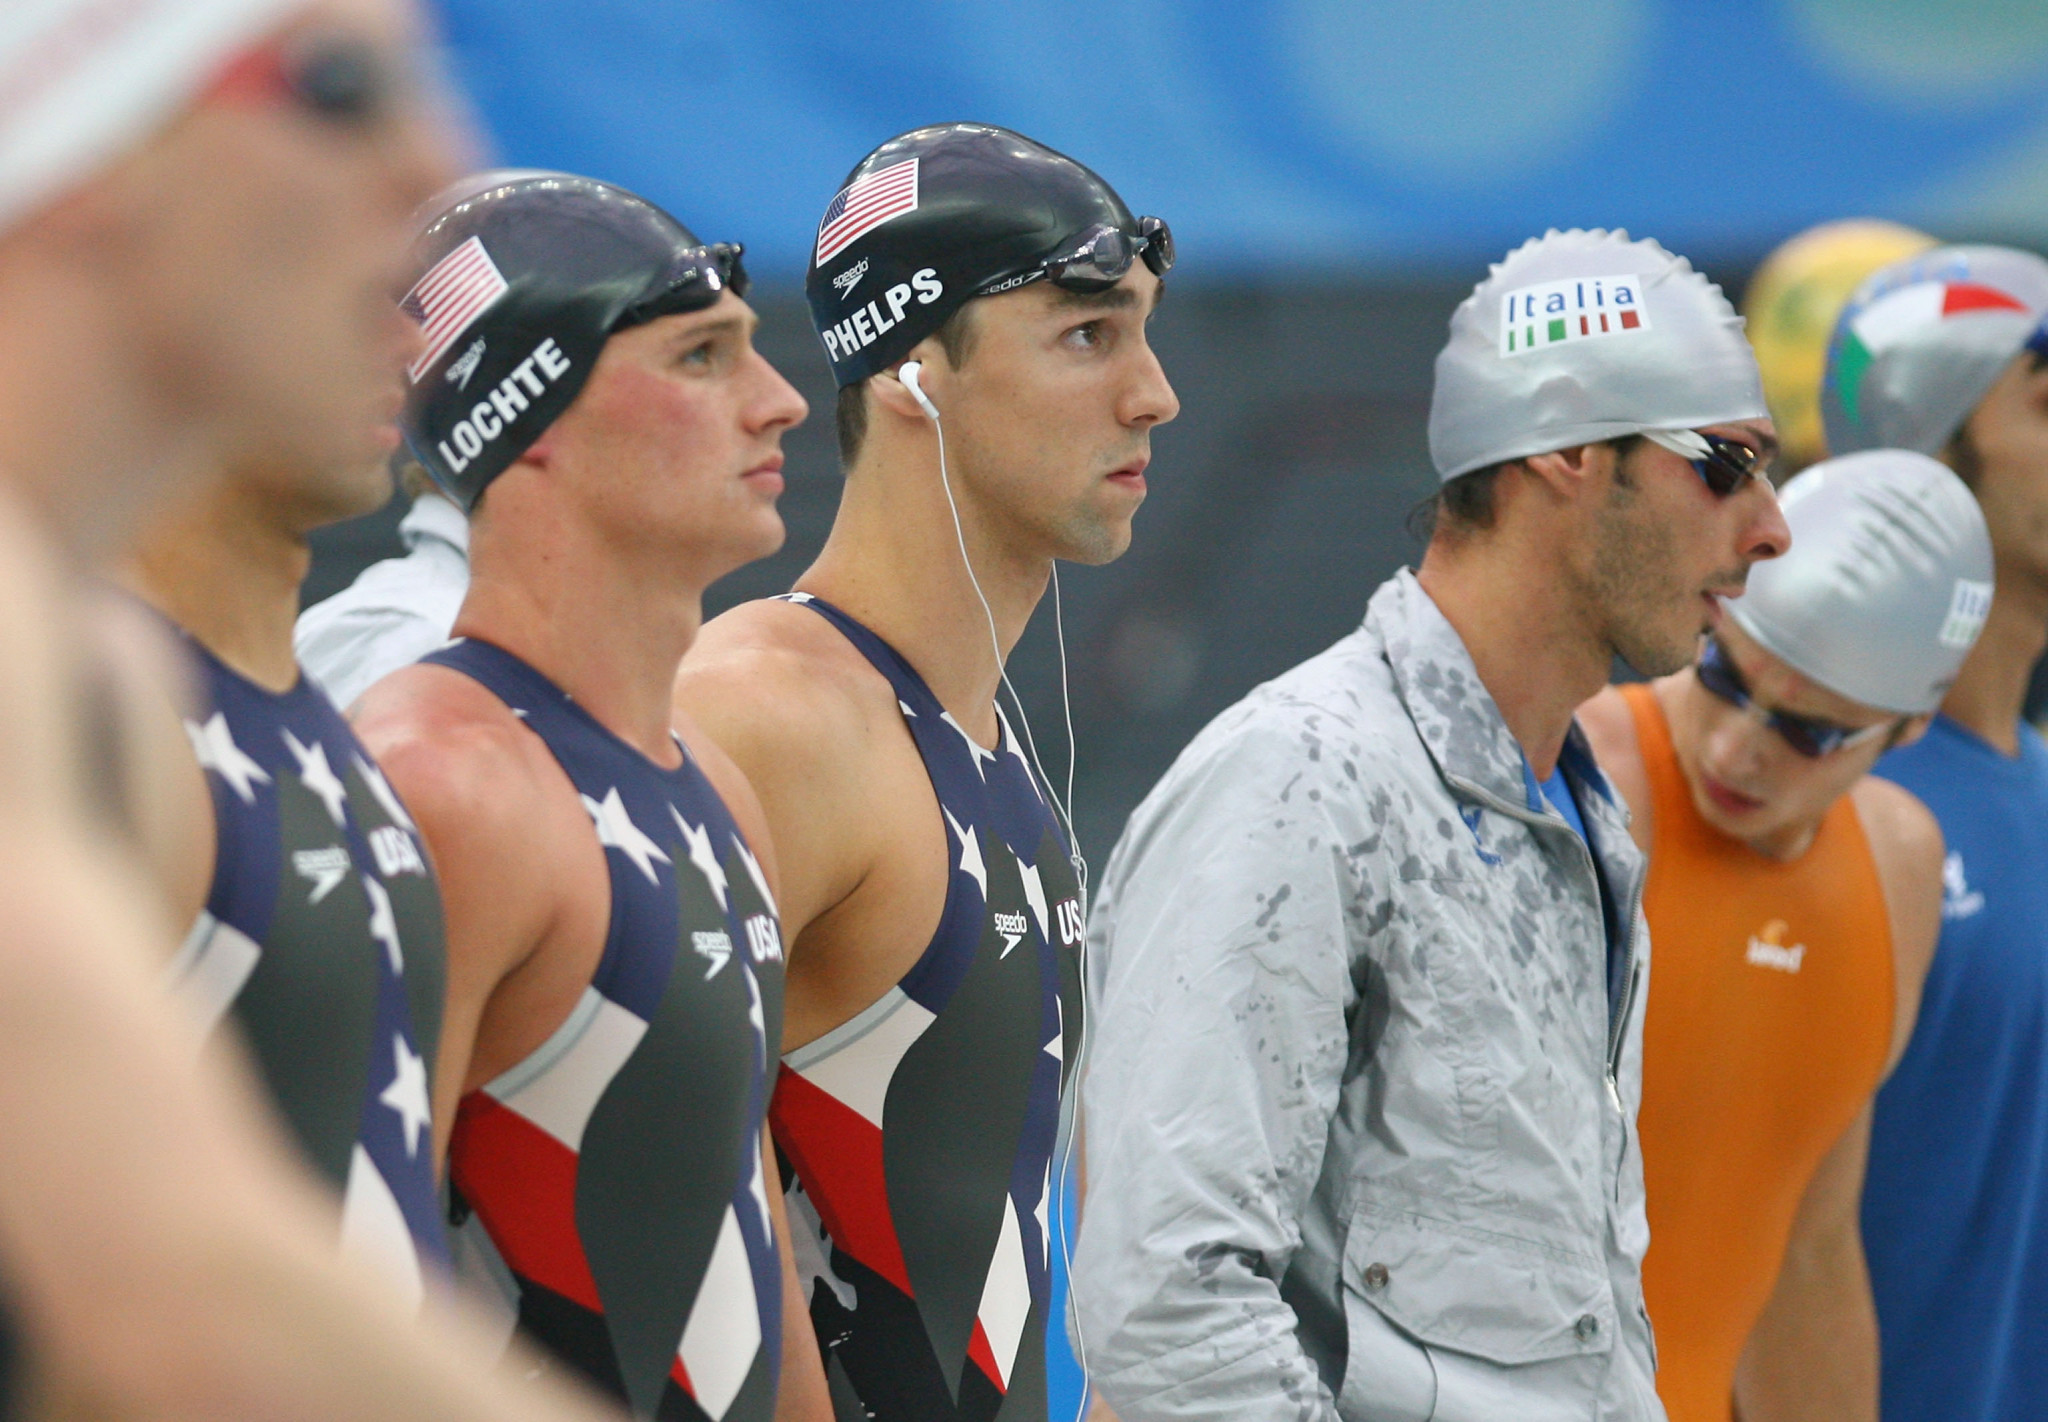 Michael Phelps was the poster boy for the full body Speedo swimsuits widely used at the Beijing 2008 Olympics, which were banned by the International Swimming Federation in 2010 ©Getty Images